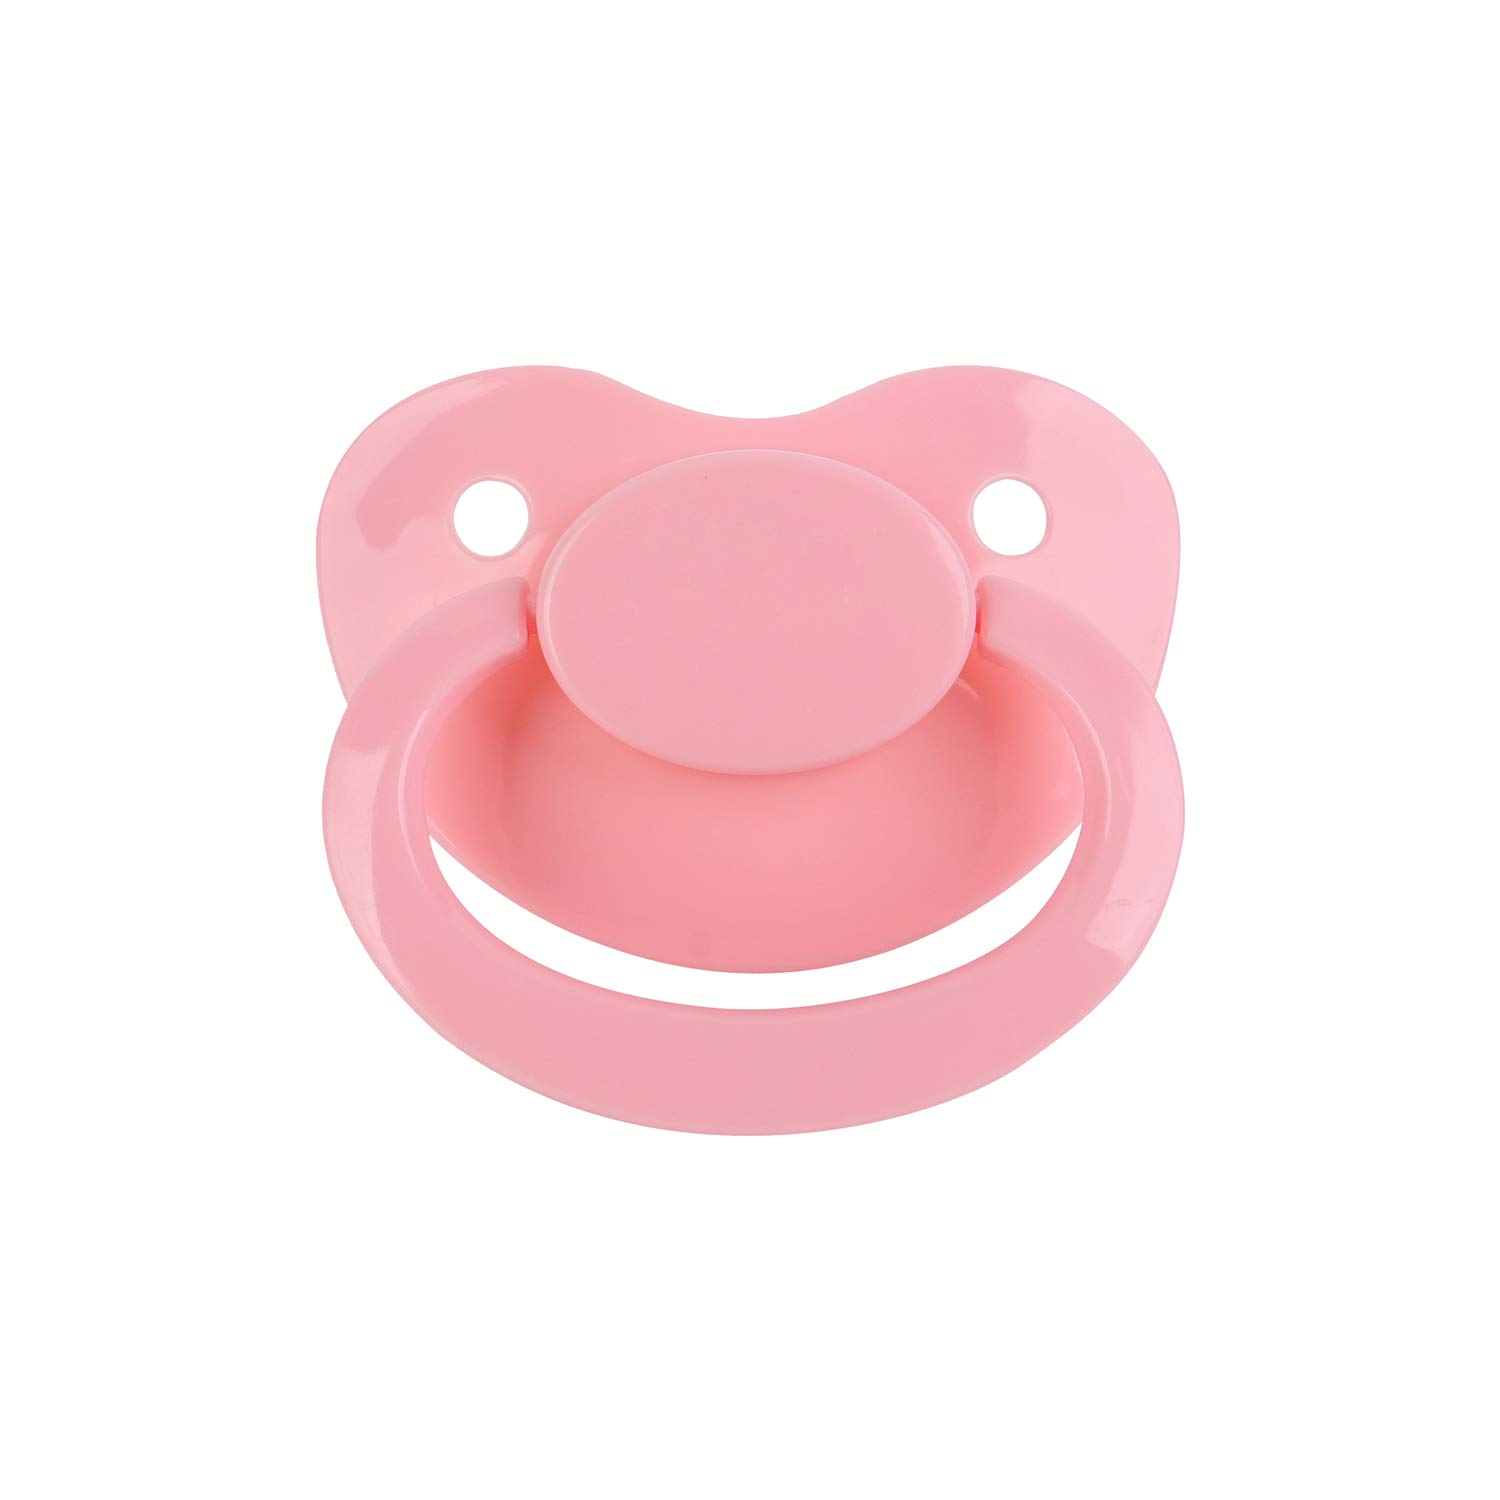 Amazon.com : Ten@Night DDLG Silicone Adult Baby Pacifier ABDL (Pink) : Baby